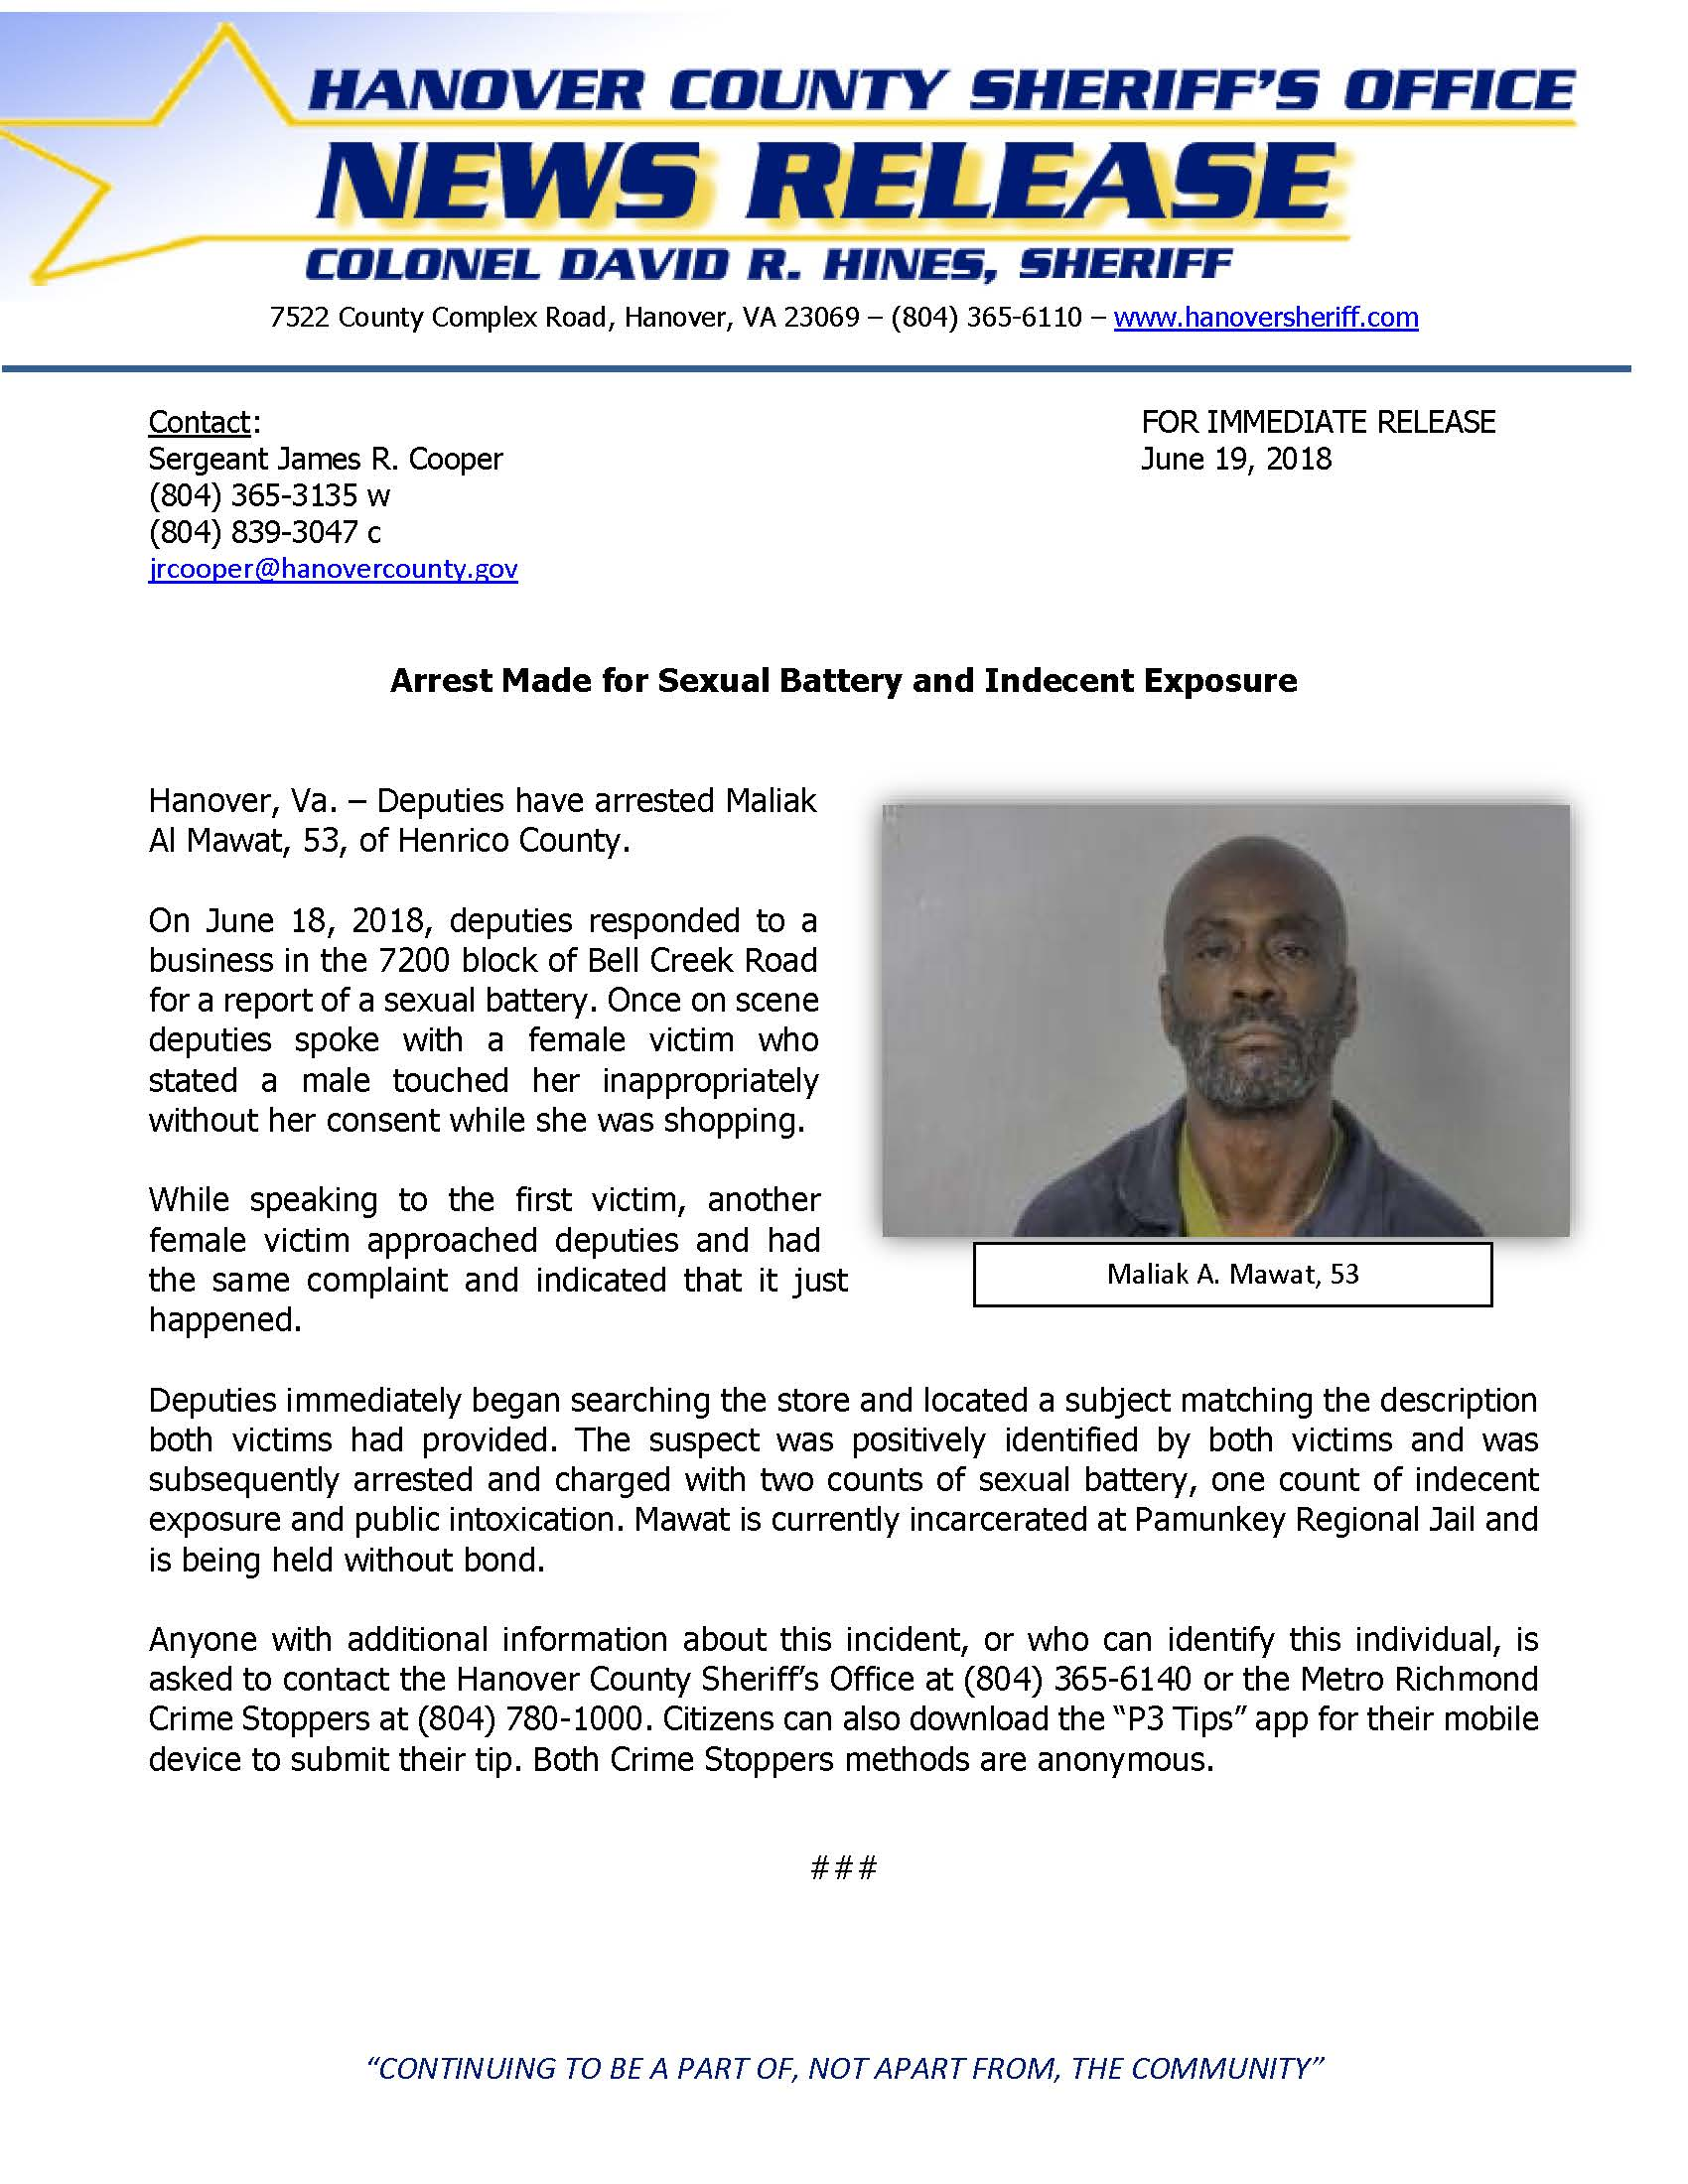 HCSO - Arrest Made for Sexual Battery and Indecent Exposure- June 19, 2018